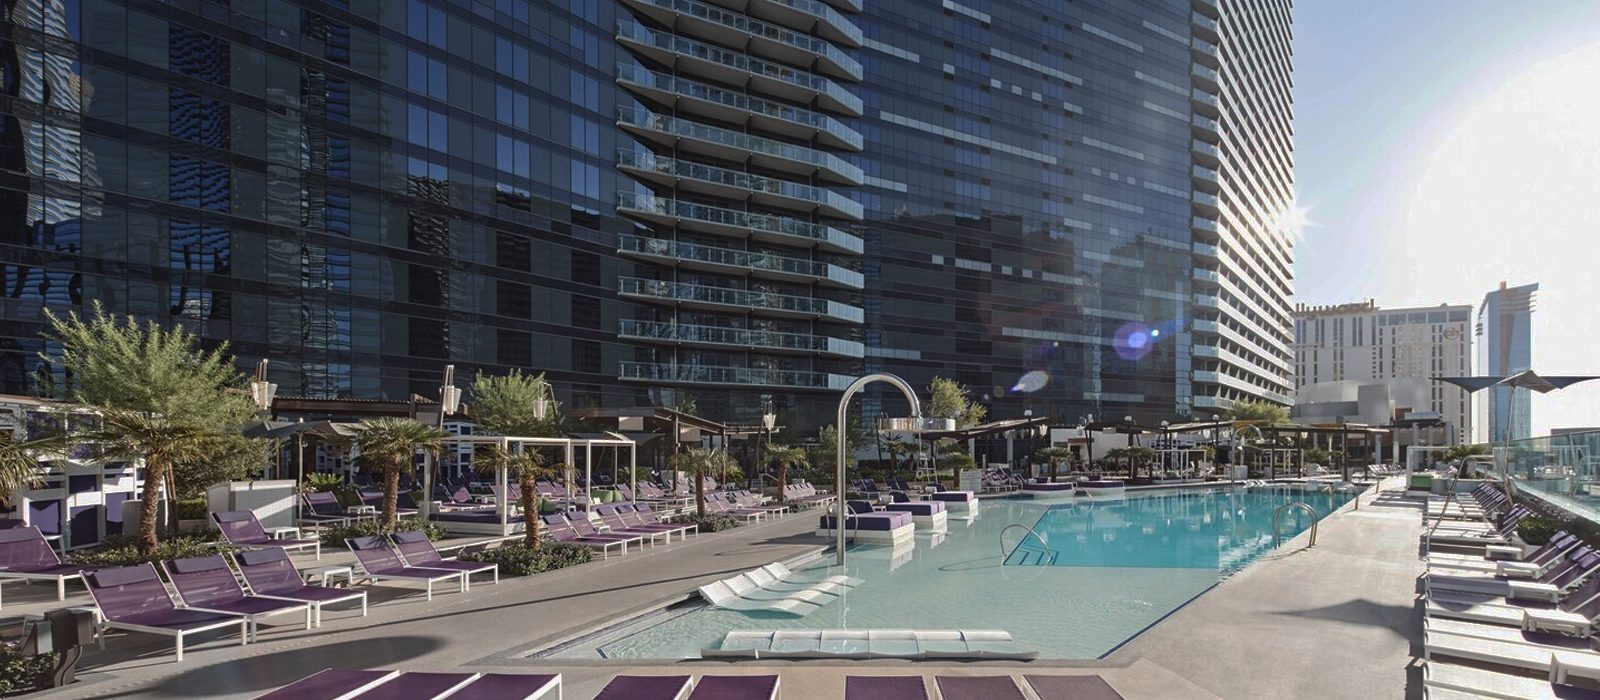 Luxury Las Vegas Holiday Packages Cosmopolitan Las Vegas Header